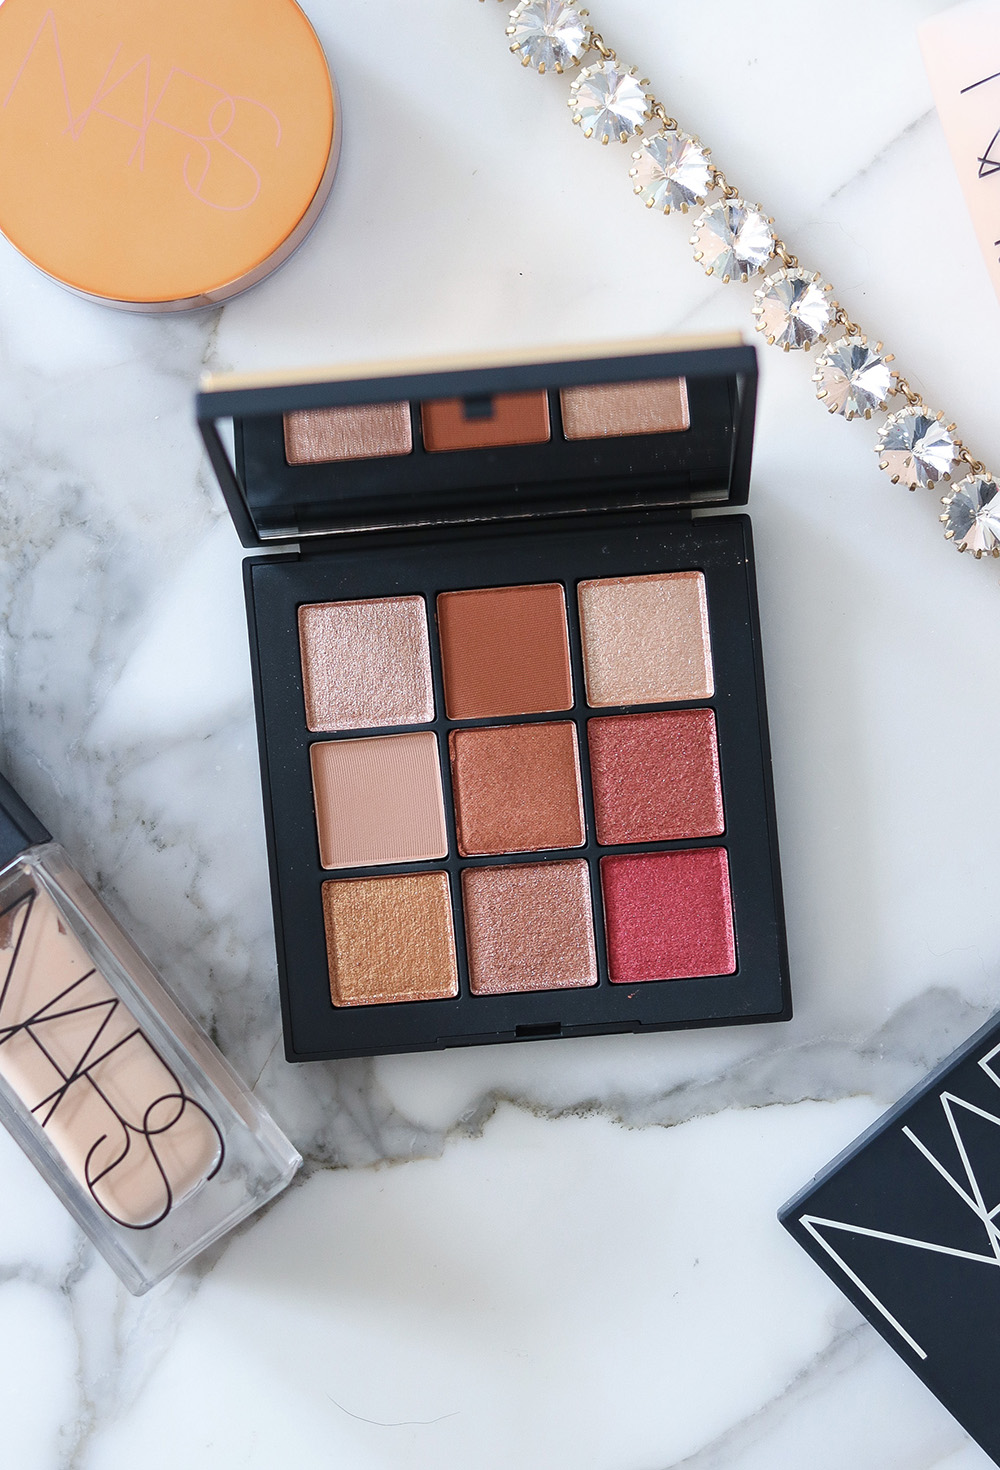 NARS Summer Solstice Eyeshadow Palette and Cream Bronzer Review I DreaminLace.com #beautyproducts #makeuplover #Makeupaddict #NARS